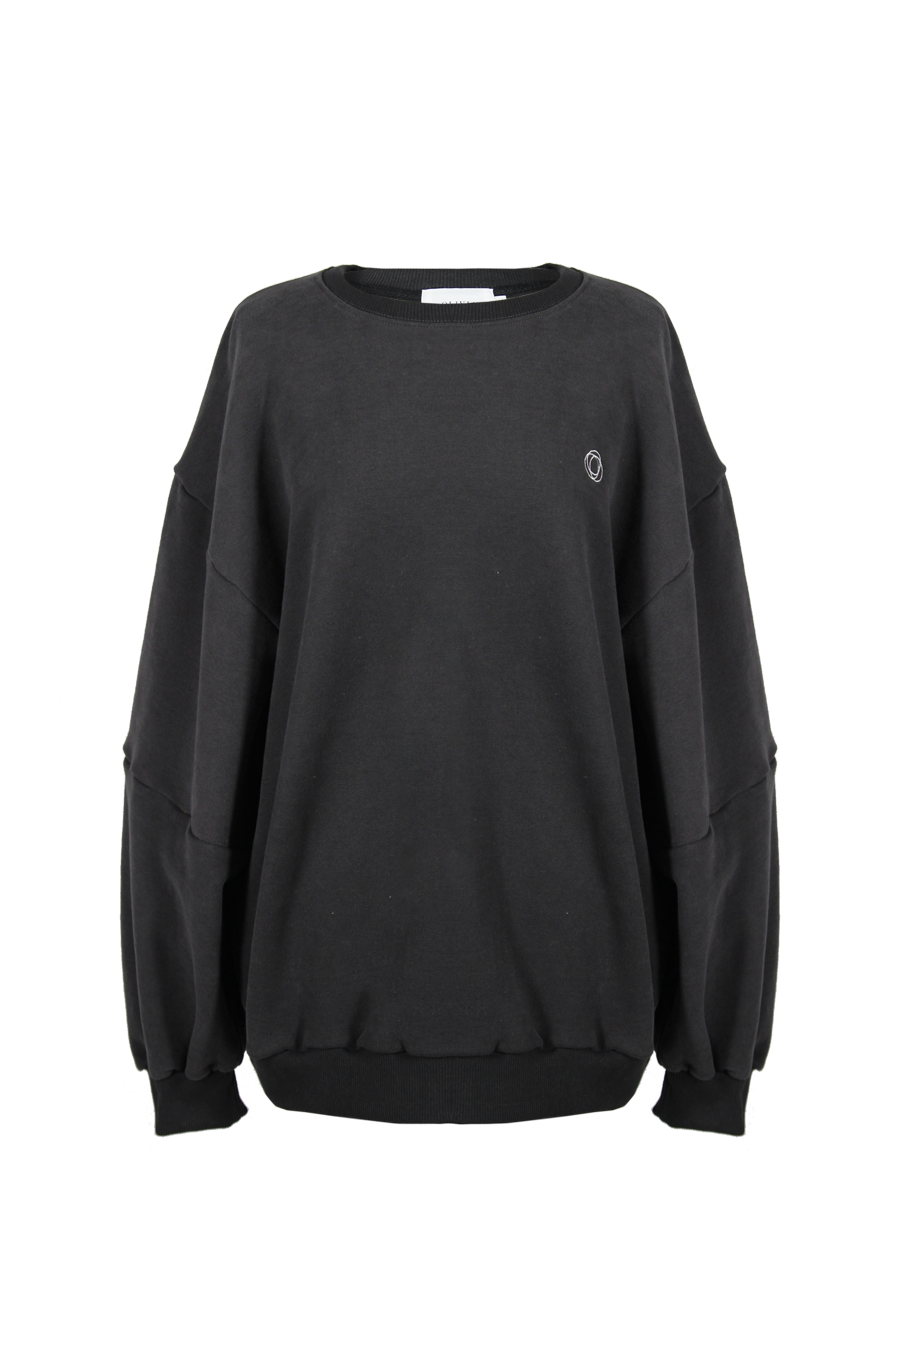 OLIVIA NZ Store online | Noa Fleece Sweatshirts / Dark Grey